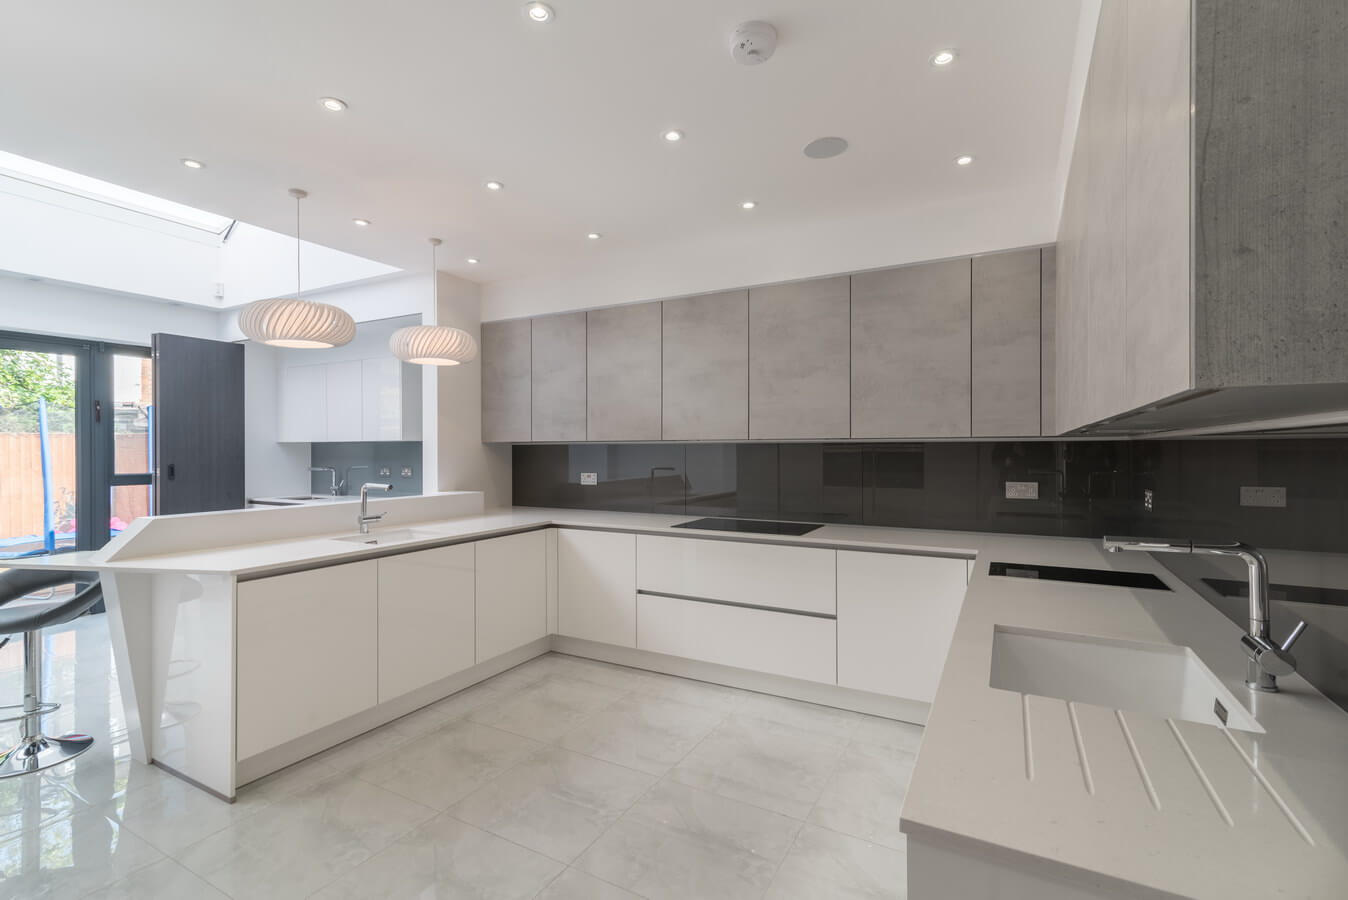 german-fitted-kitchen-east-london-tottenham.jpg